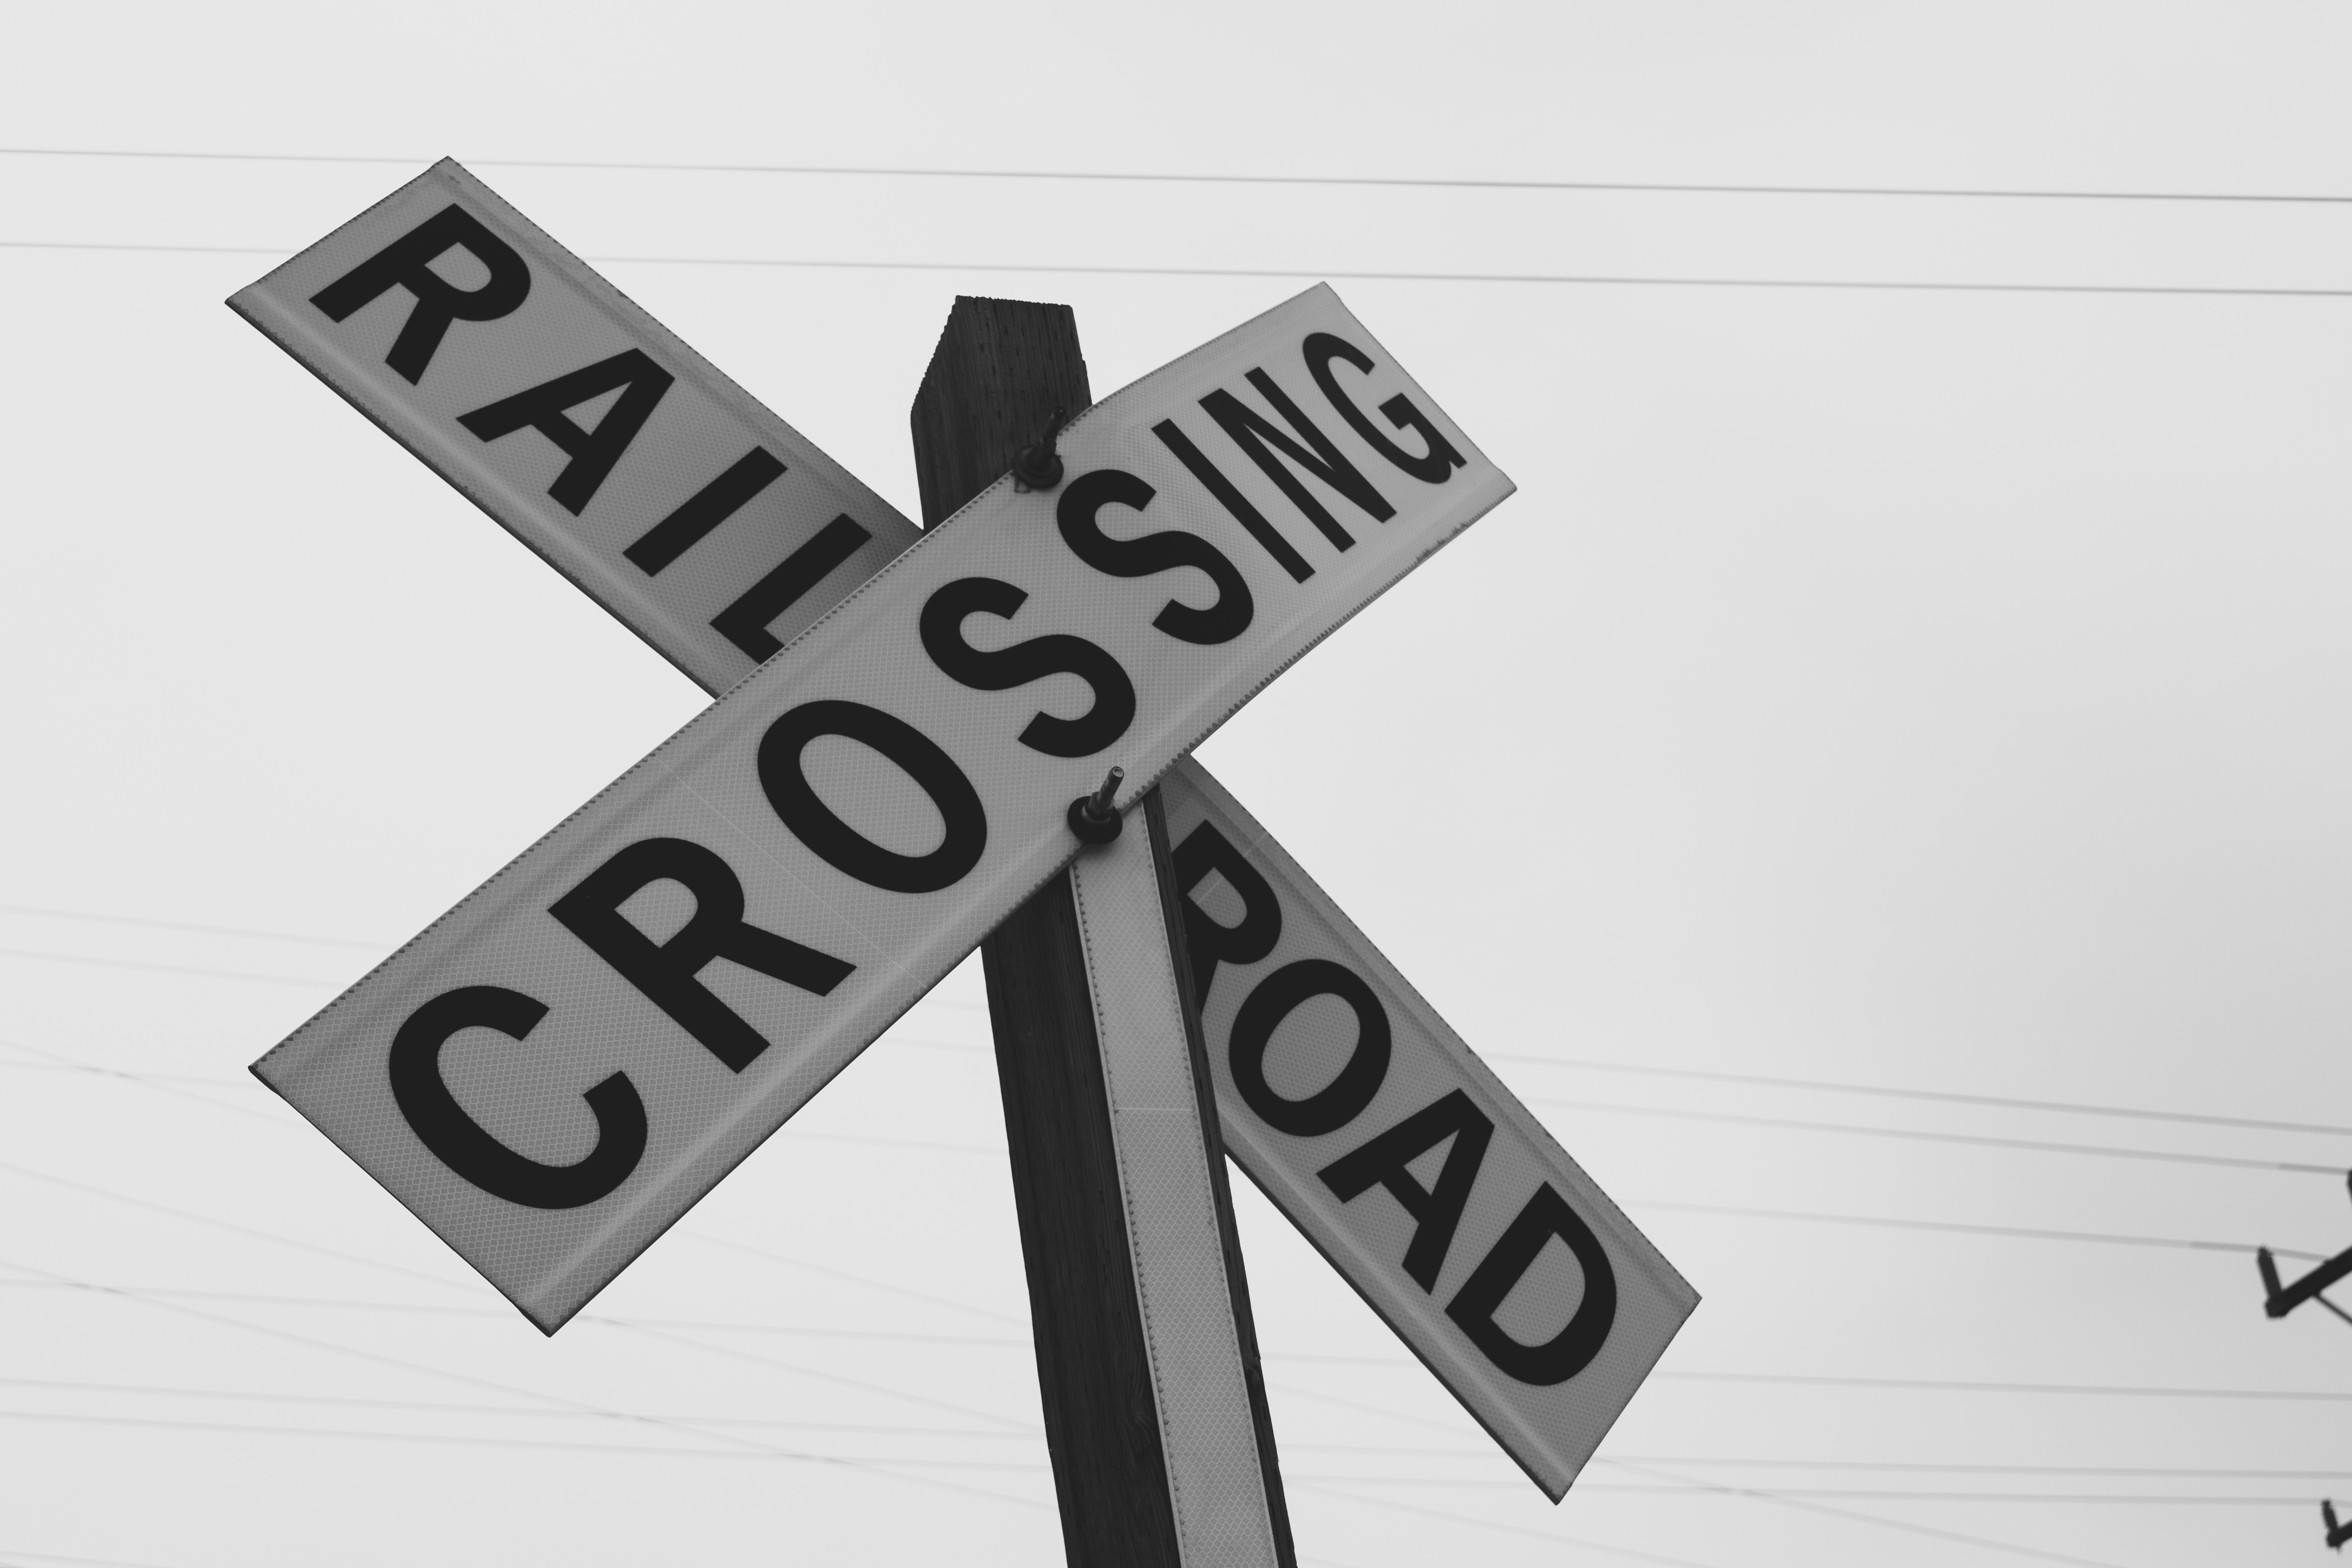 Black and white photo of a road sign near the railway